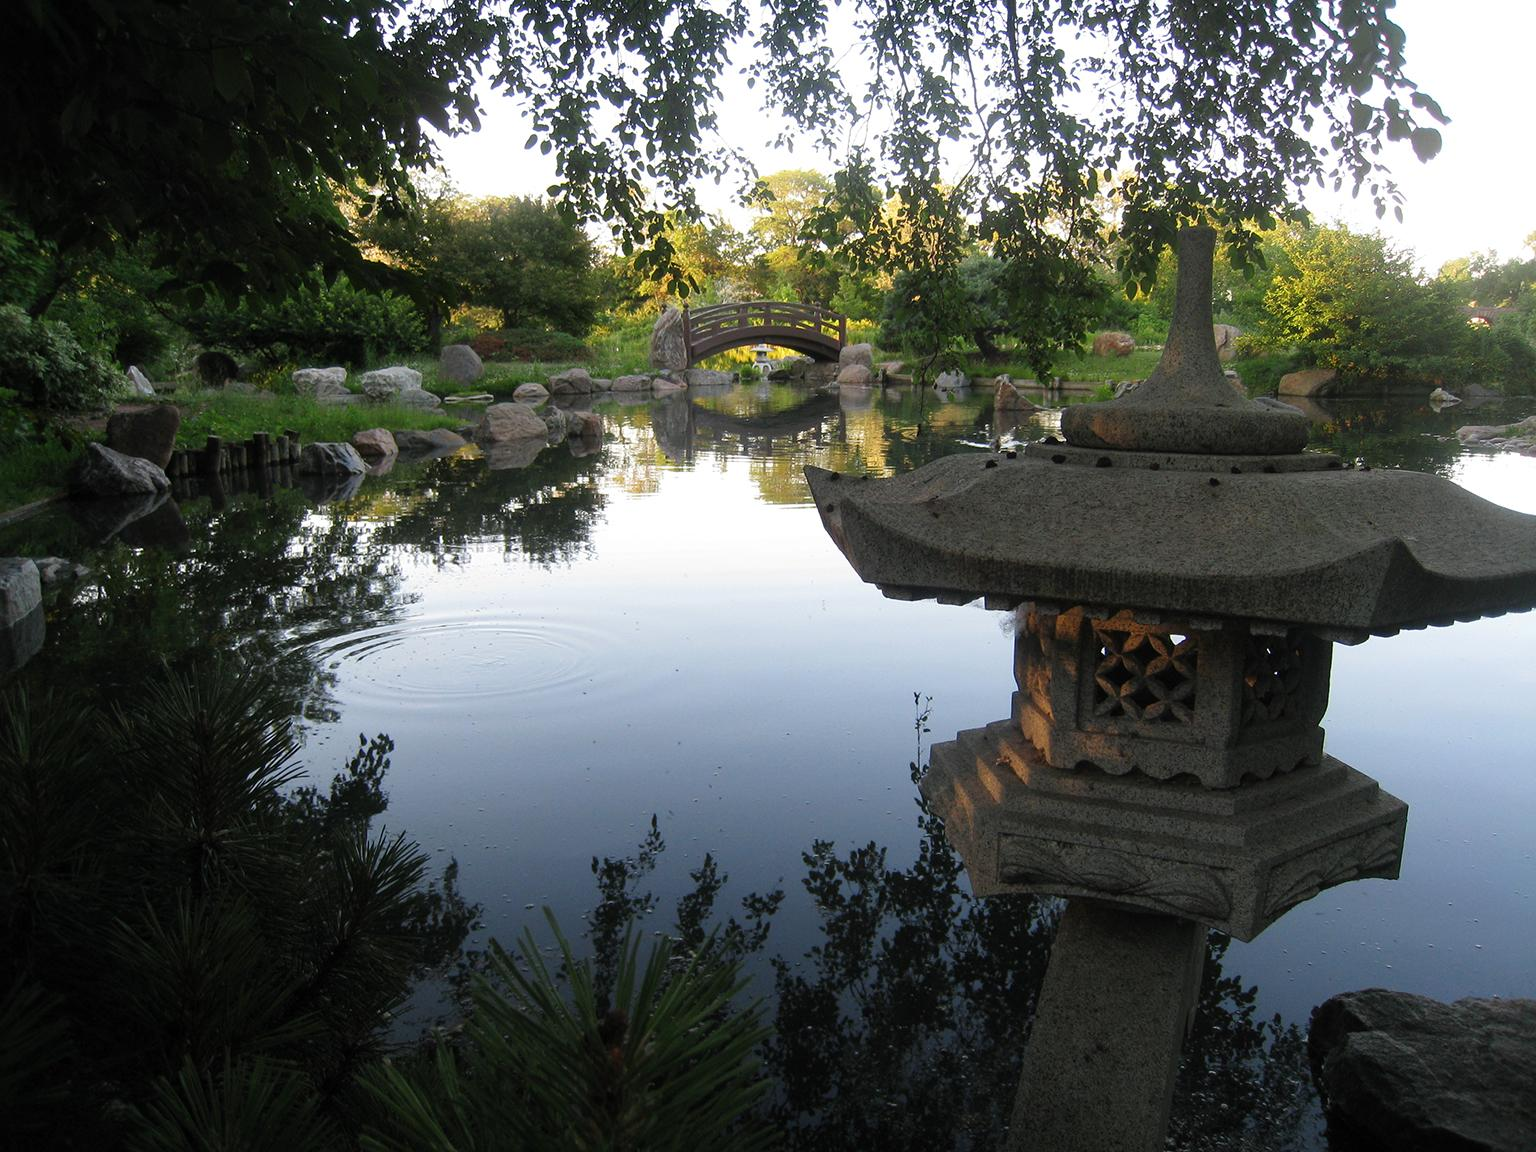 The Garden of the Phoenix in Jackson Park (Urbanrules / Wikimedia Commons)